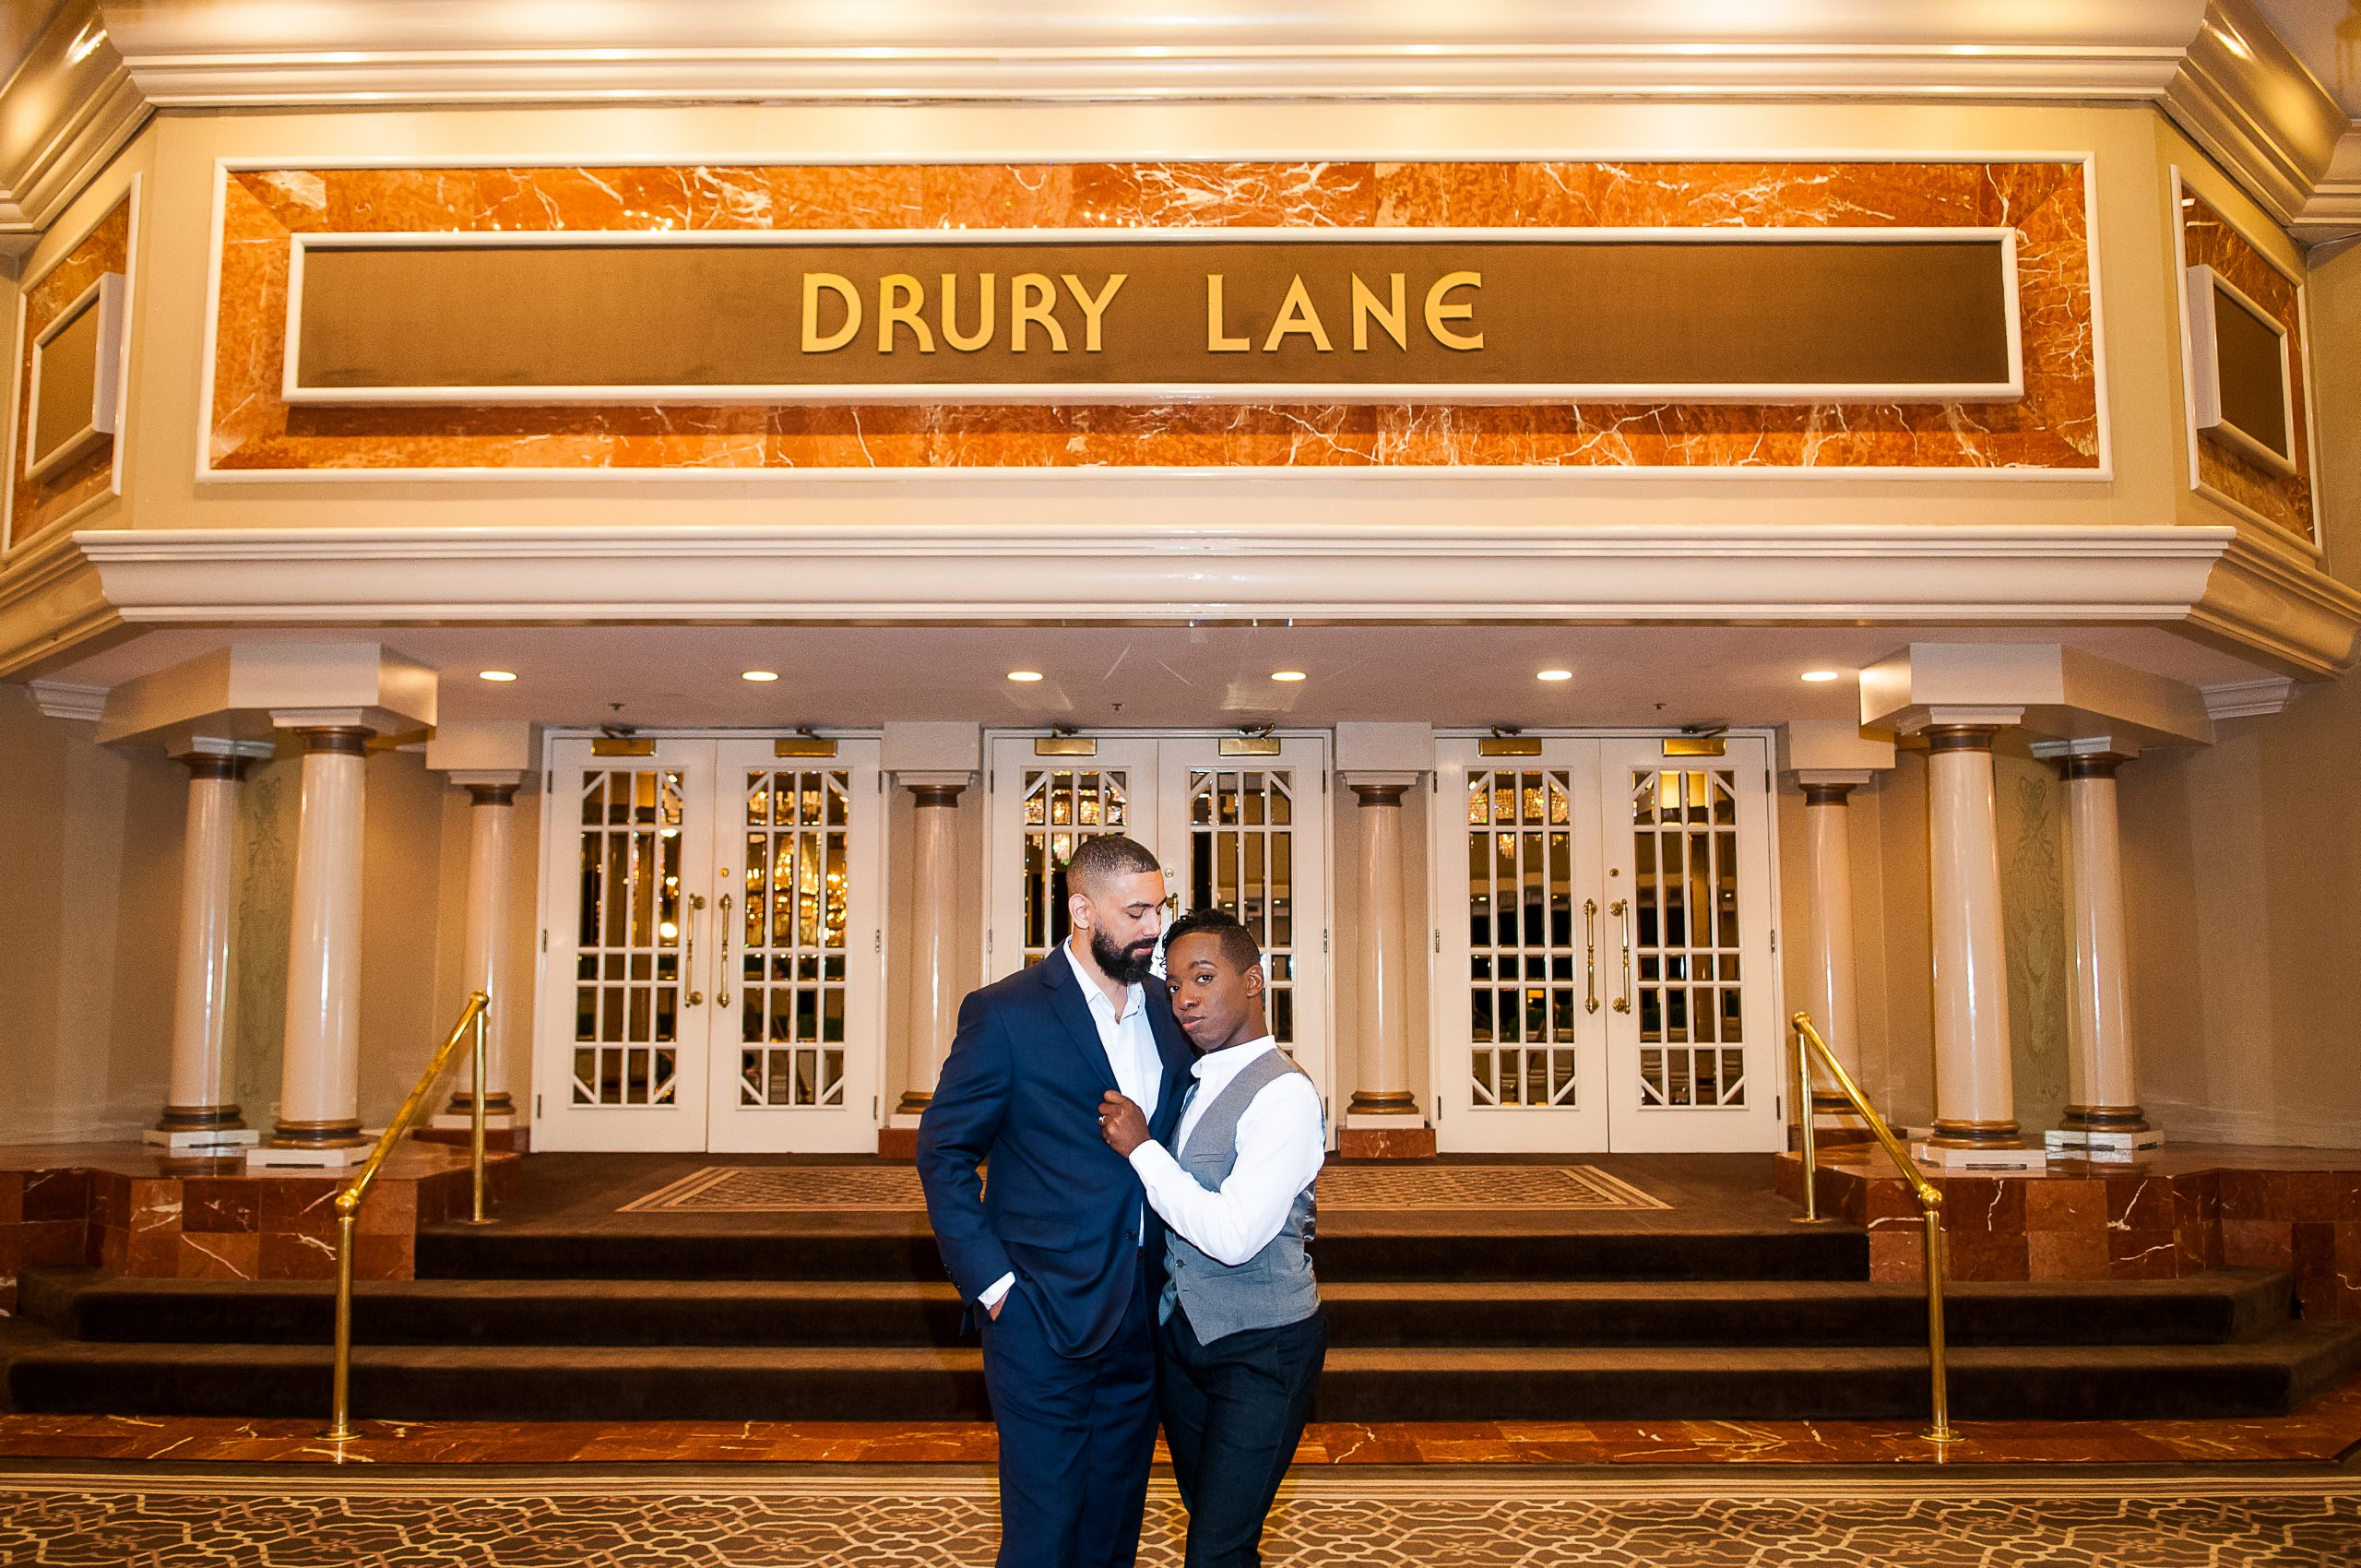 Drury Lane Engagement Photo Sessions | TWA Photographic Artists | Chicago Wedding Photographers